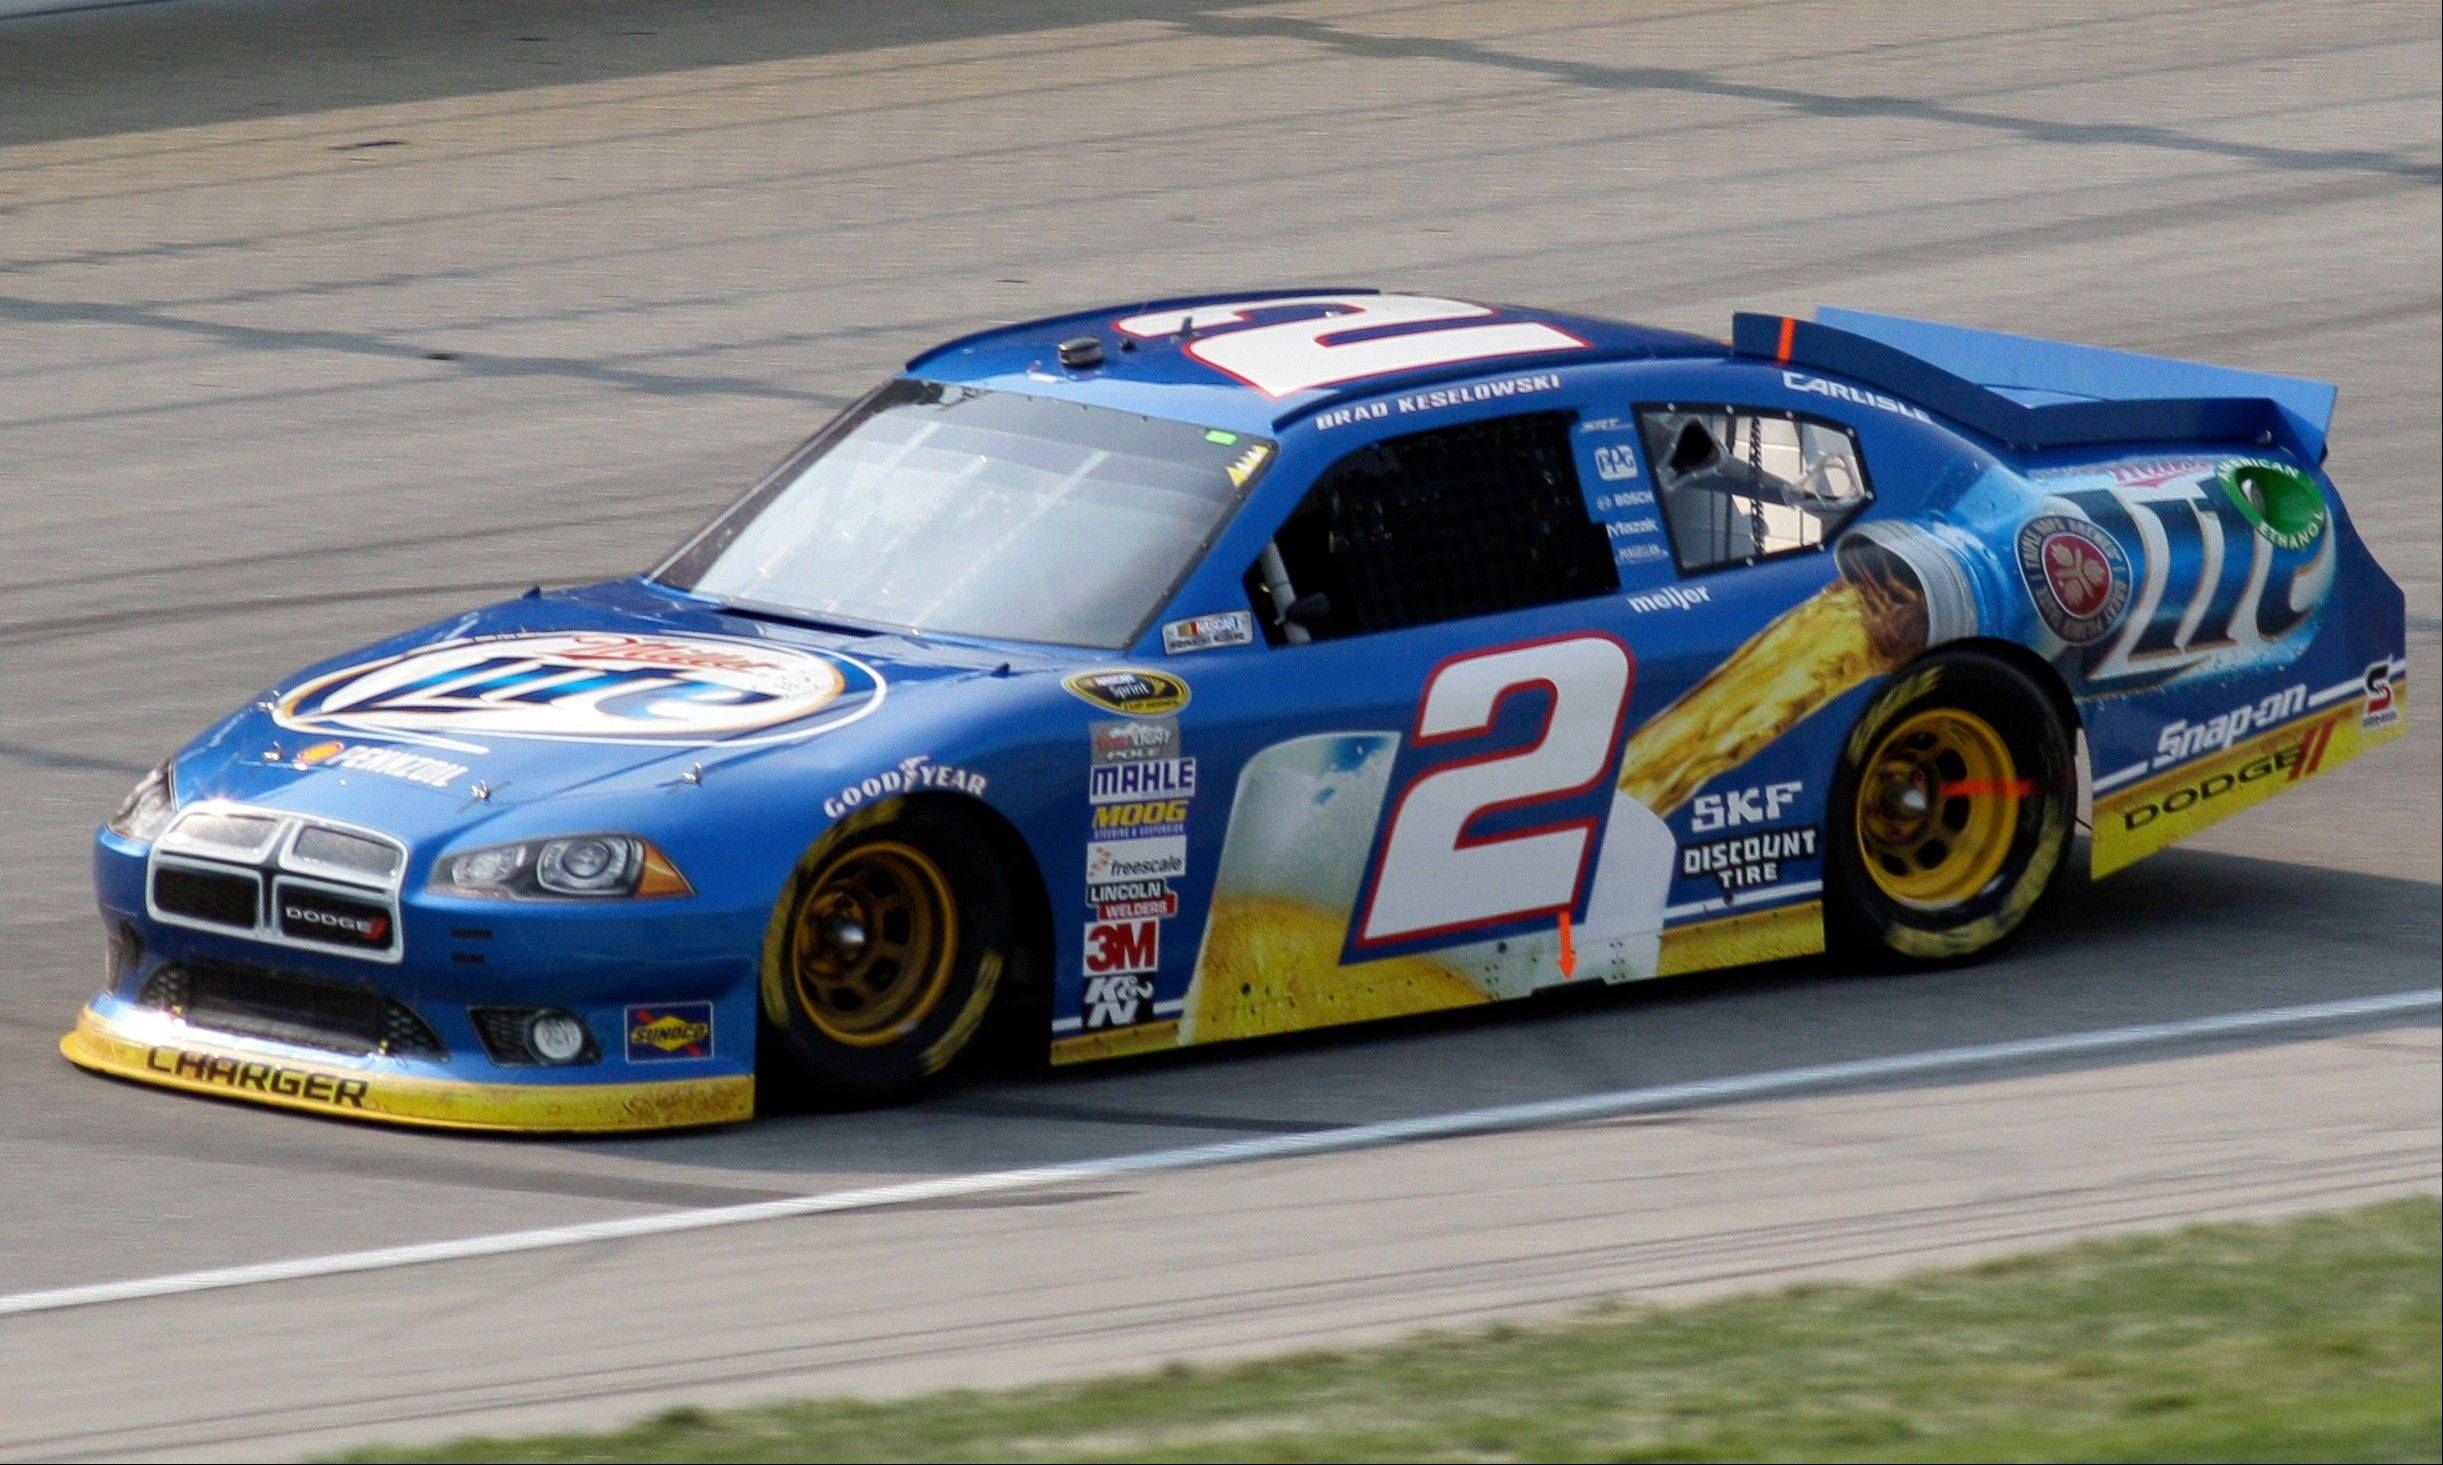 Brad Keselowski drives during the NASCAR Sprint Cup Series auto race at Chicagoland Speedway in Joliet.